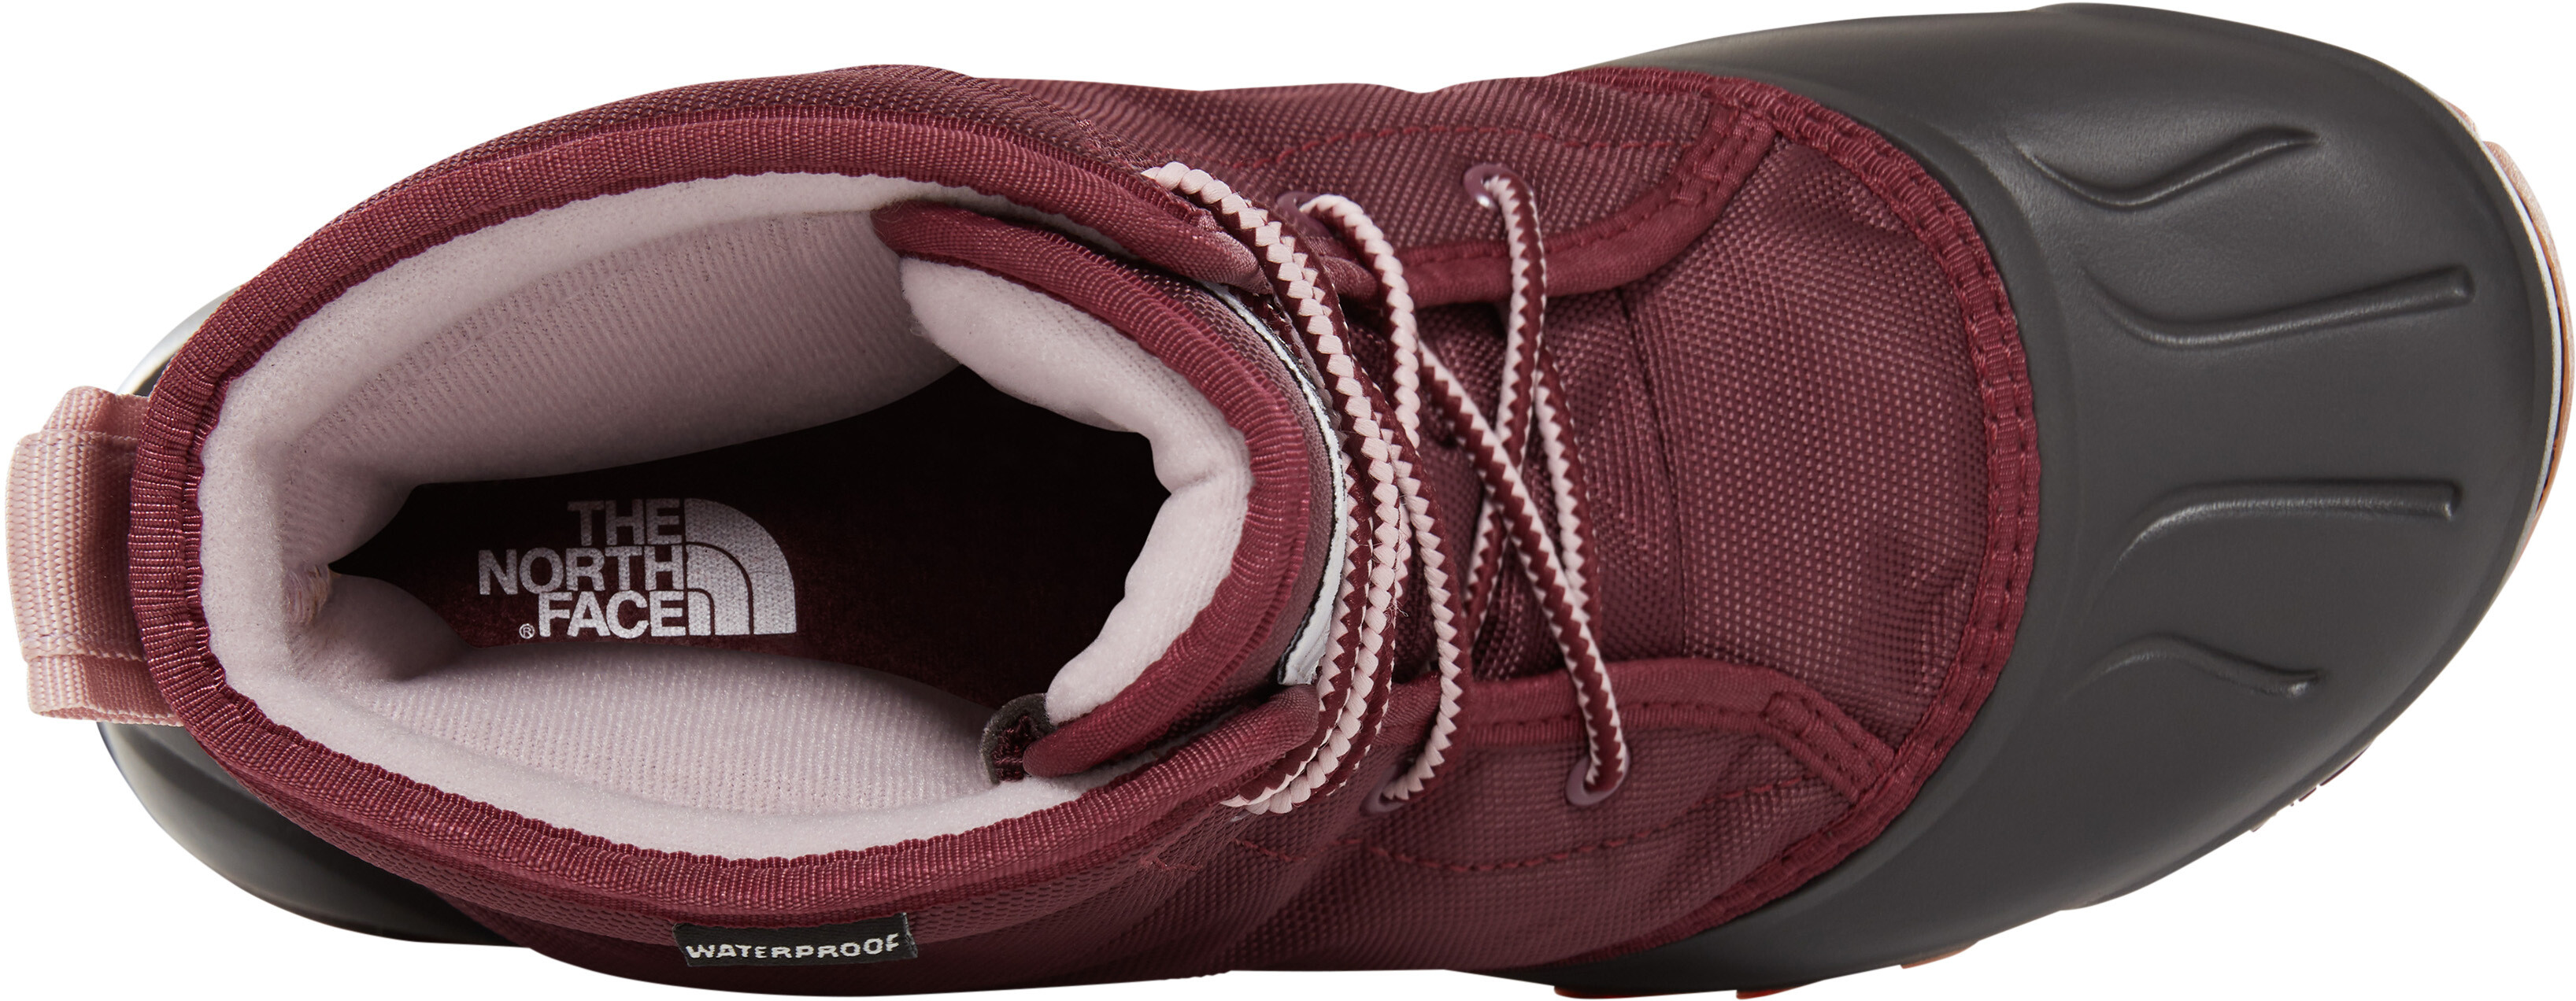 68dff10f727cb The North Face Tsumoru - Chaussures Femme - rouge noir sur campz.fr !